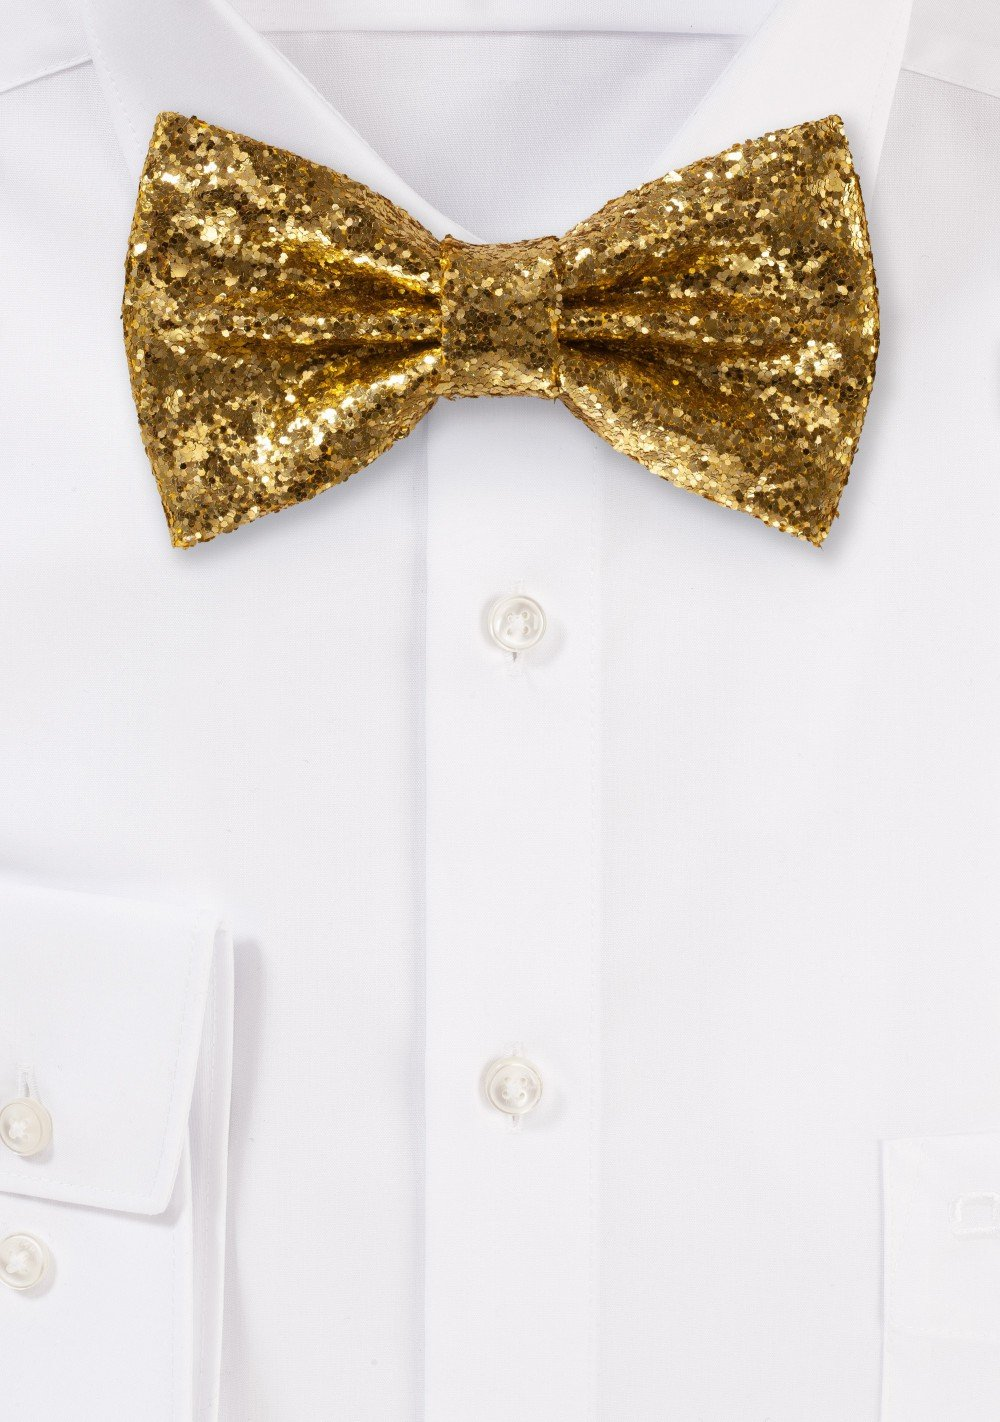 Glitter Bow Tie in Vegas Gold formal gold metallic mens bow tie